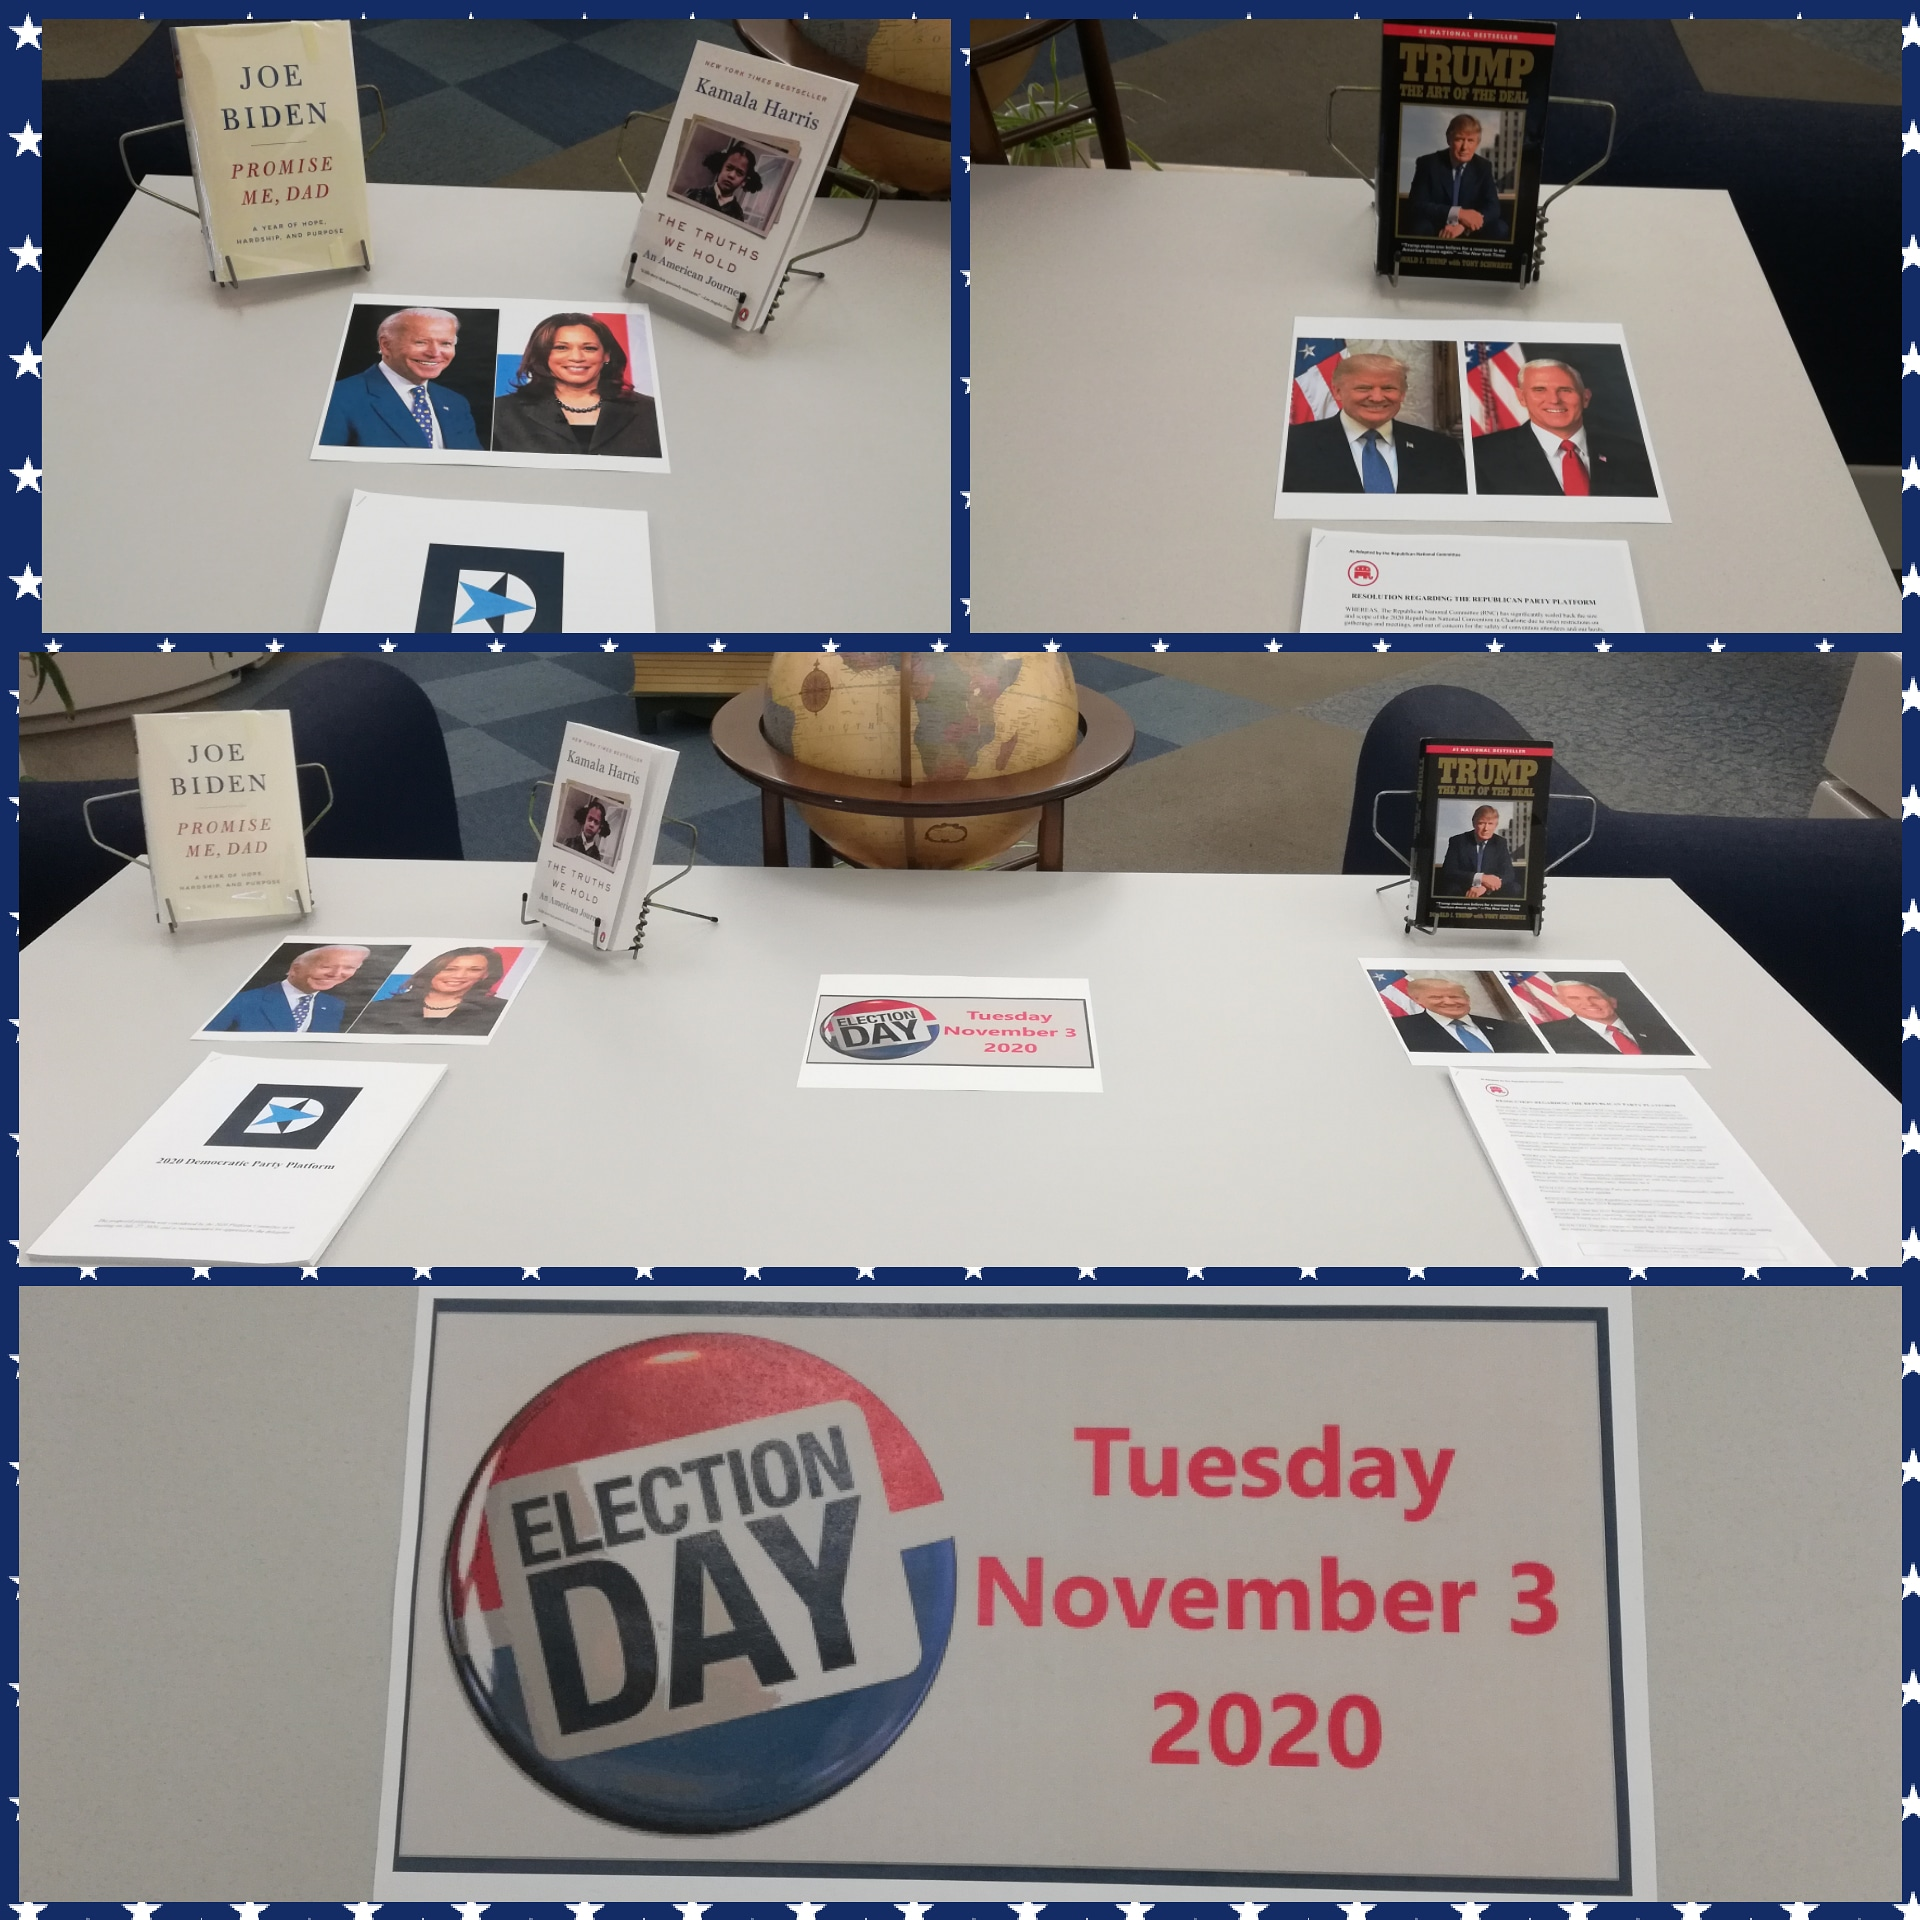 Election Day Display with books and info about the republican and democrat platforms